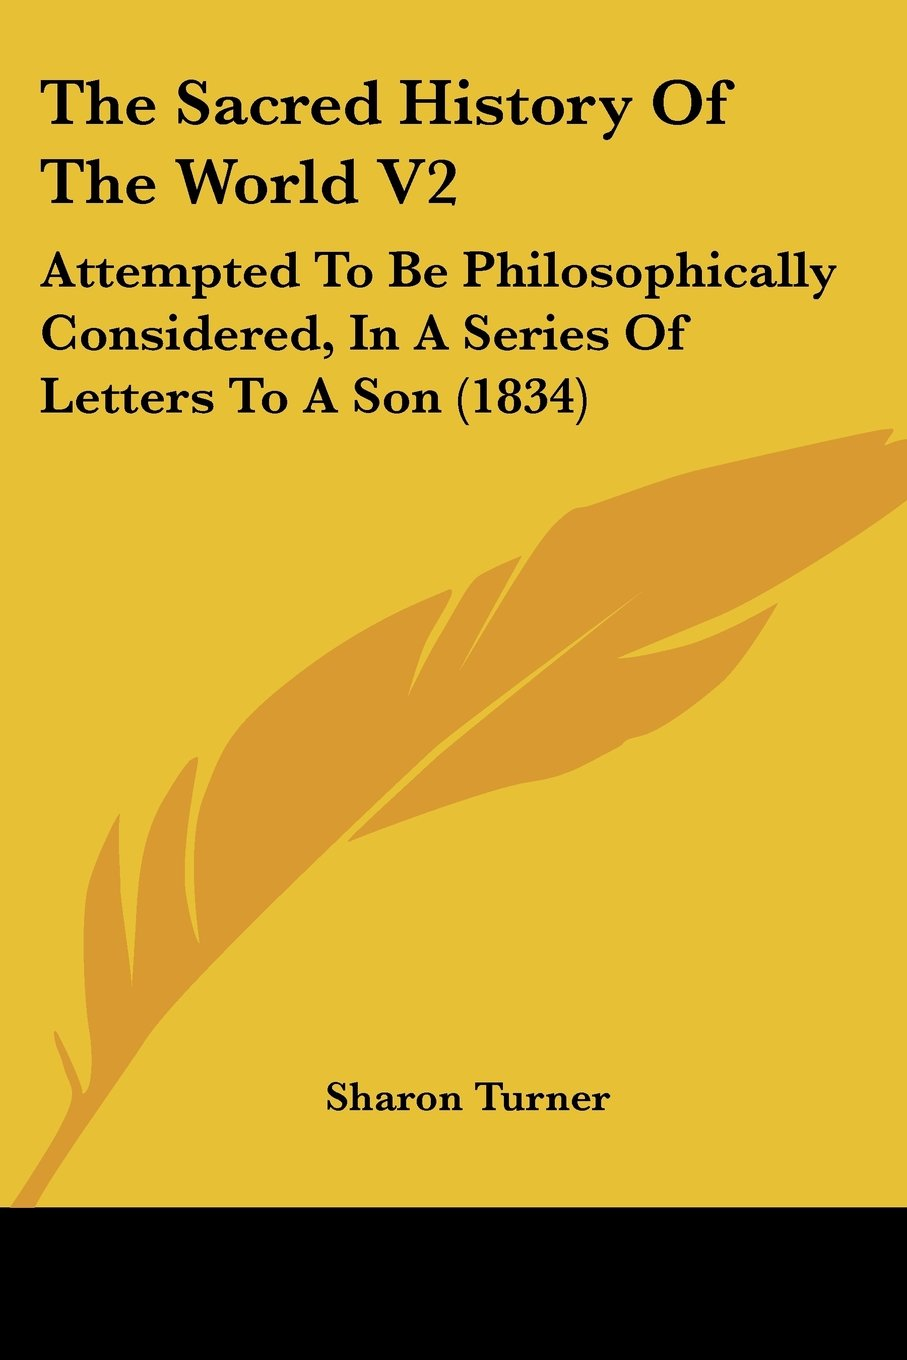 The Sacred History Of The World V2: Attempted To Be Philosophically Considered, In A Series Of Letters To A Son (1834) ebook